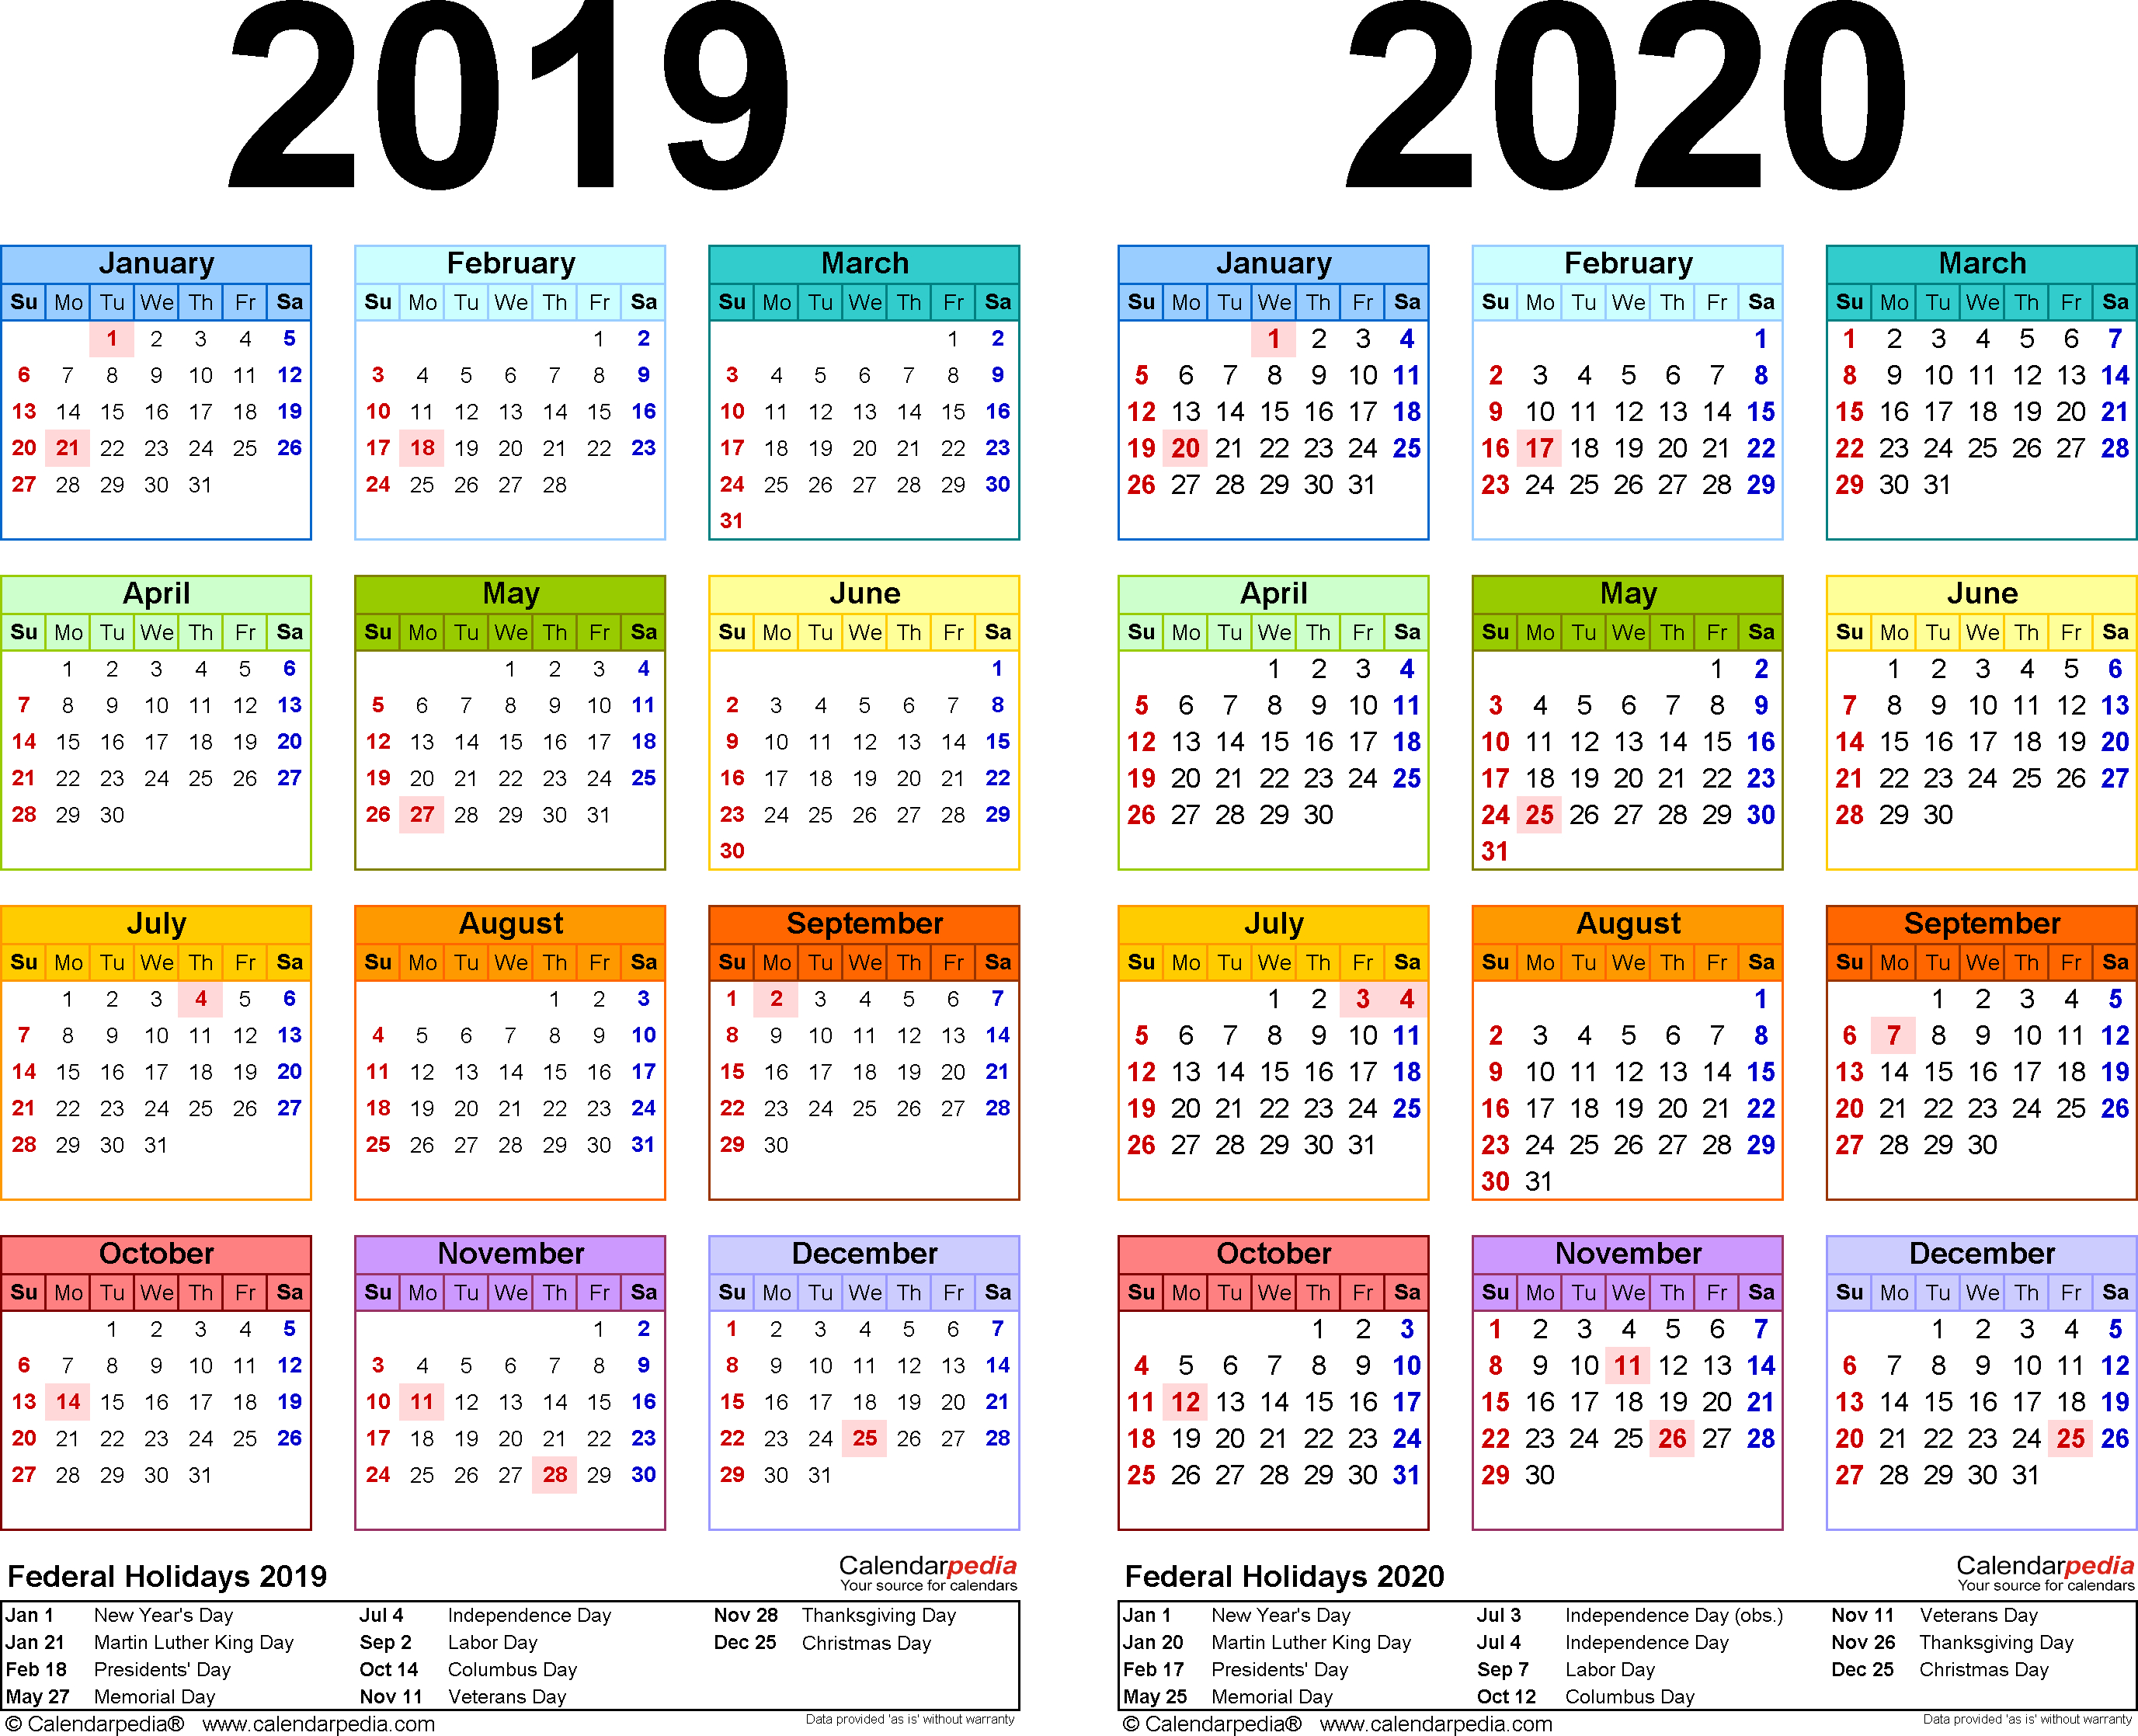 2019-2020 Calendar - Free Printable Two-Year Excel Calendars in Calendar For 2019 And 2020 To Edit